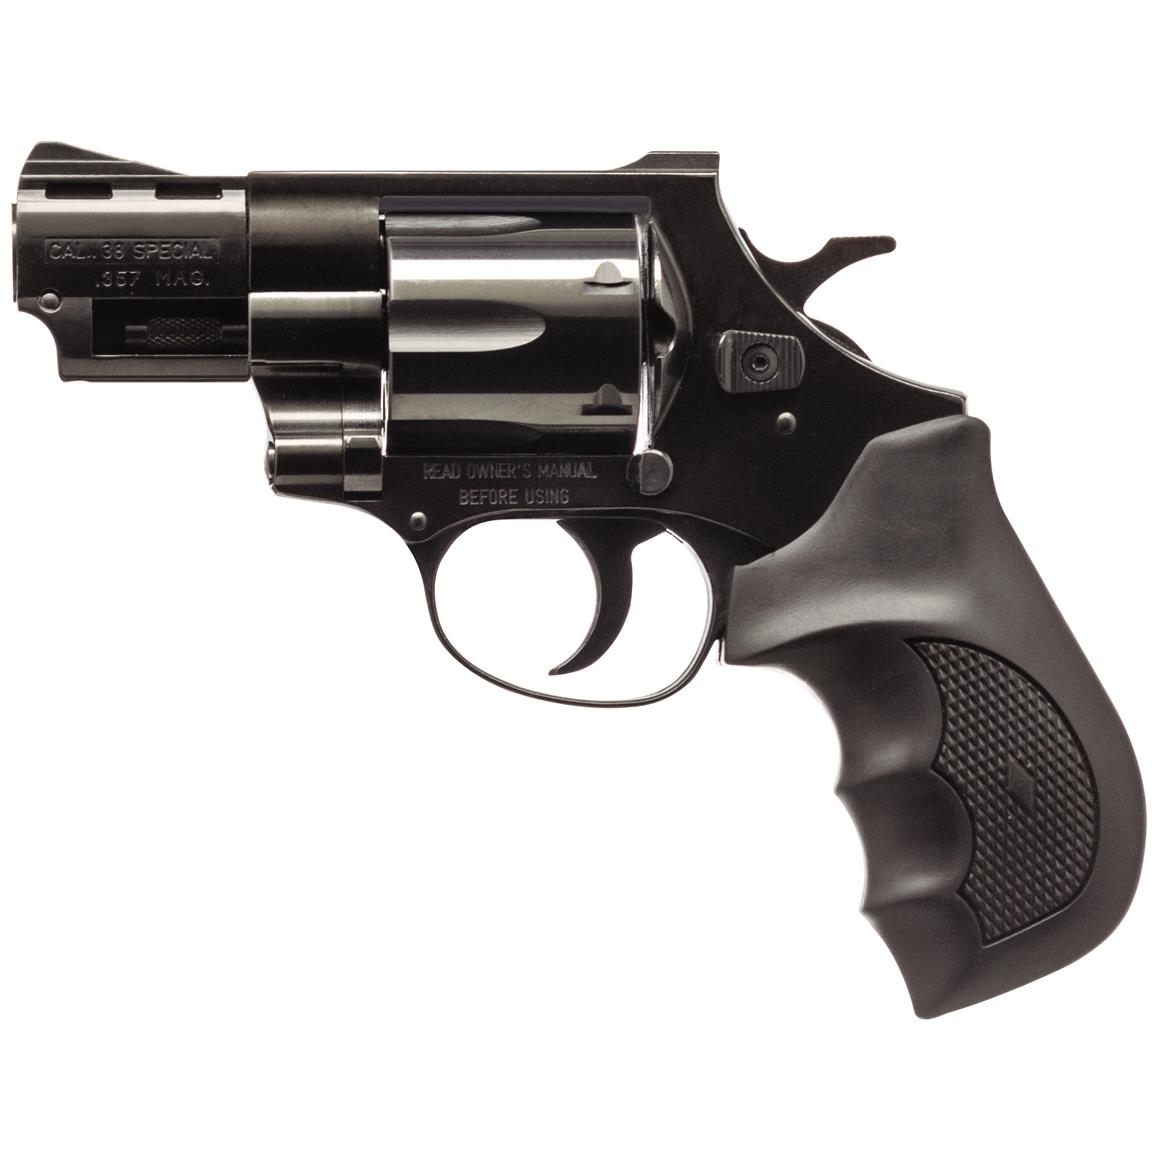 EAA Weihrauch Windicator, Revolver, .38 Special, 770125, 741566010359